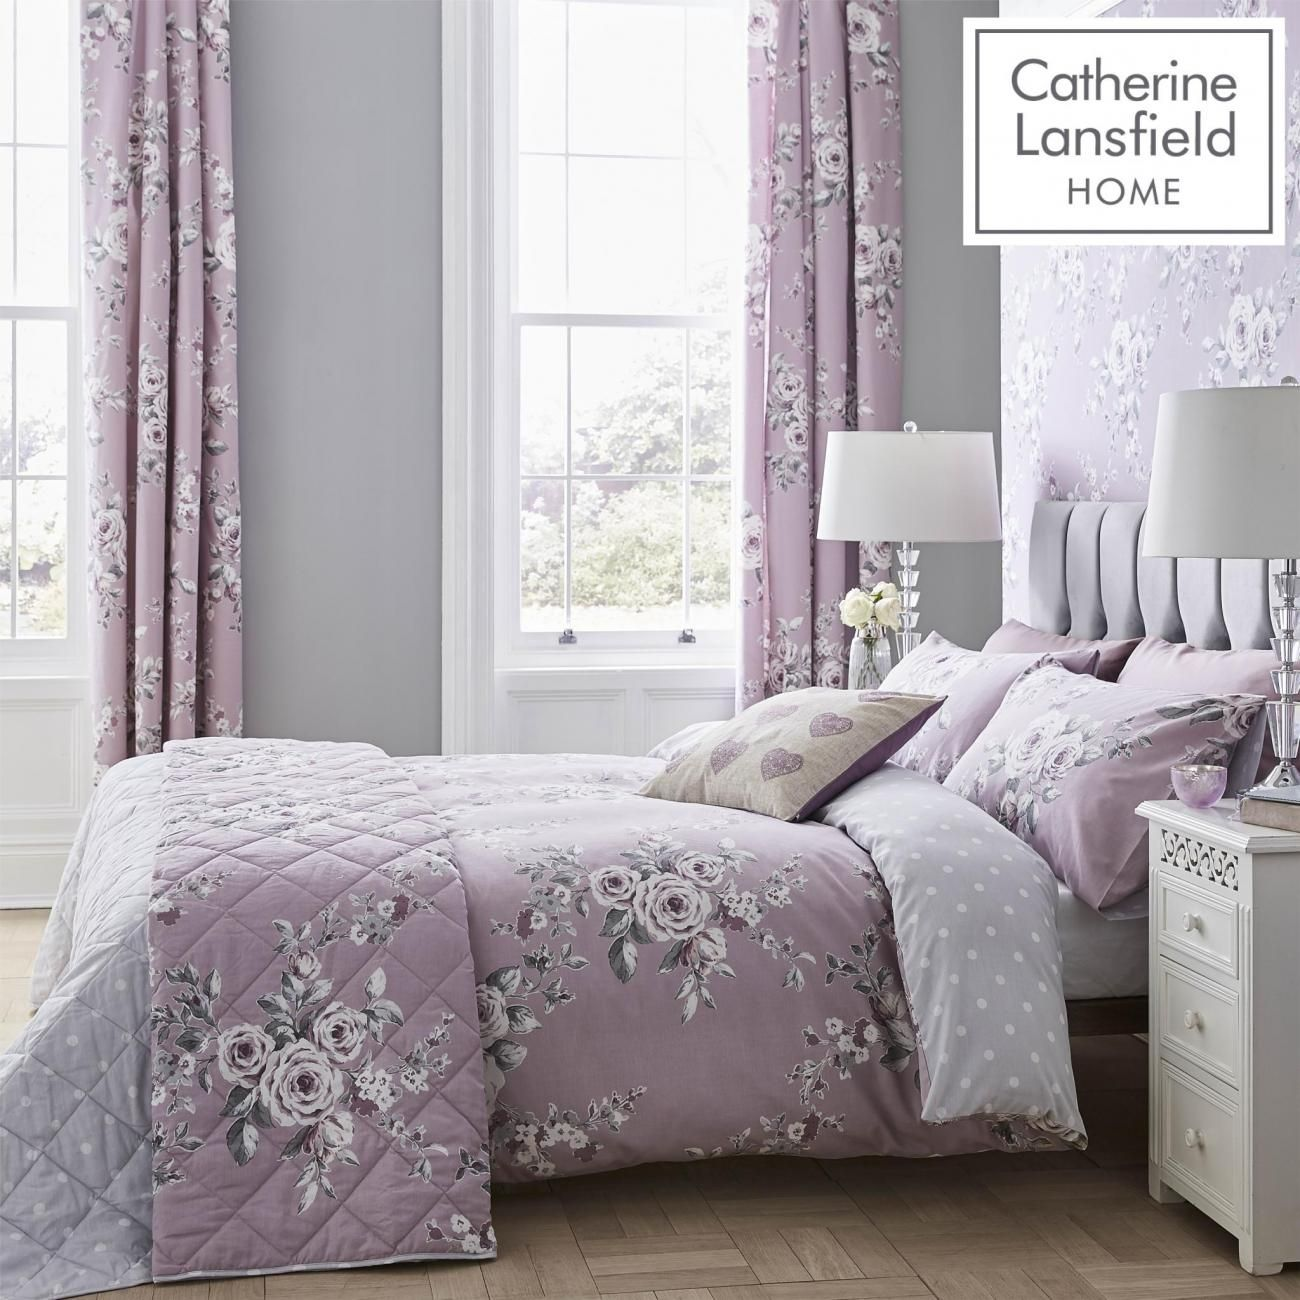 Catherine Langford Bedding Set - The Yorkshire Linen Co